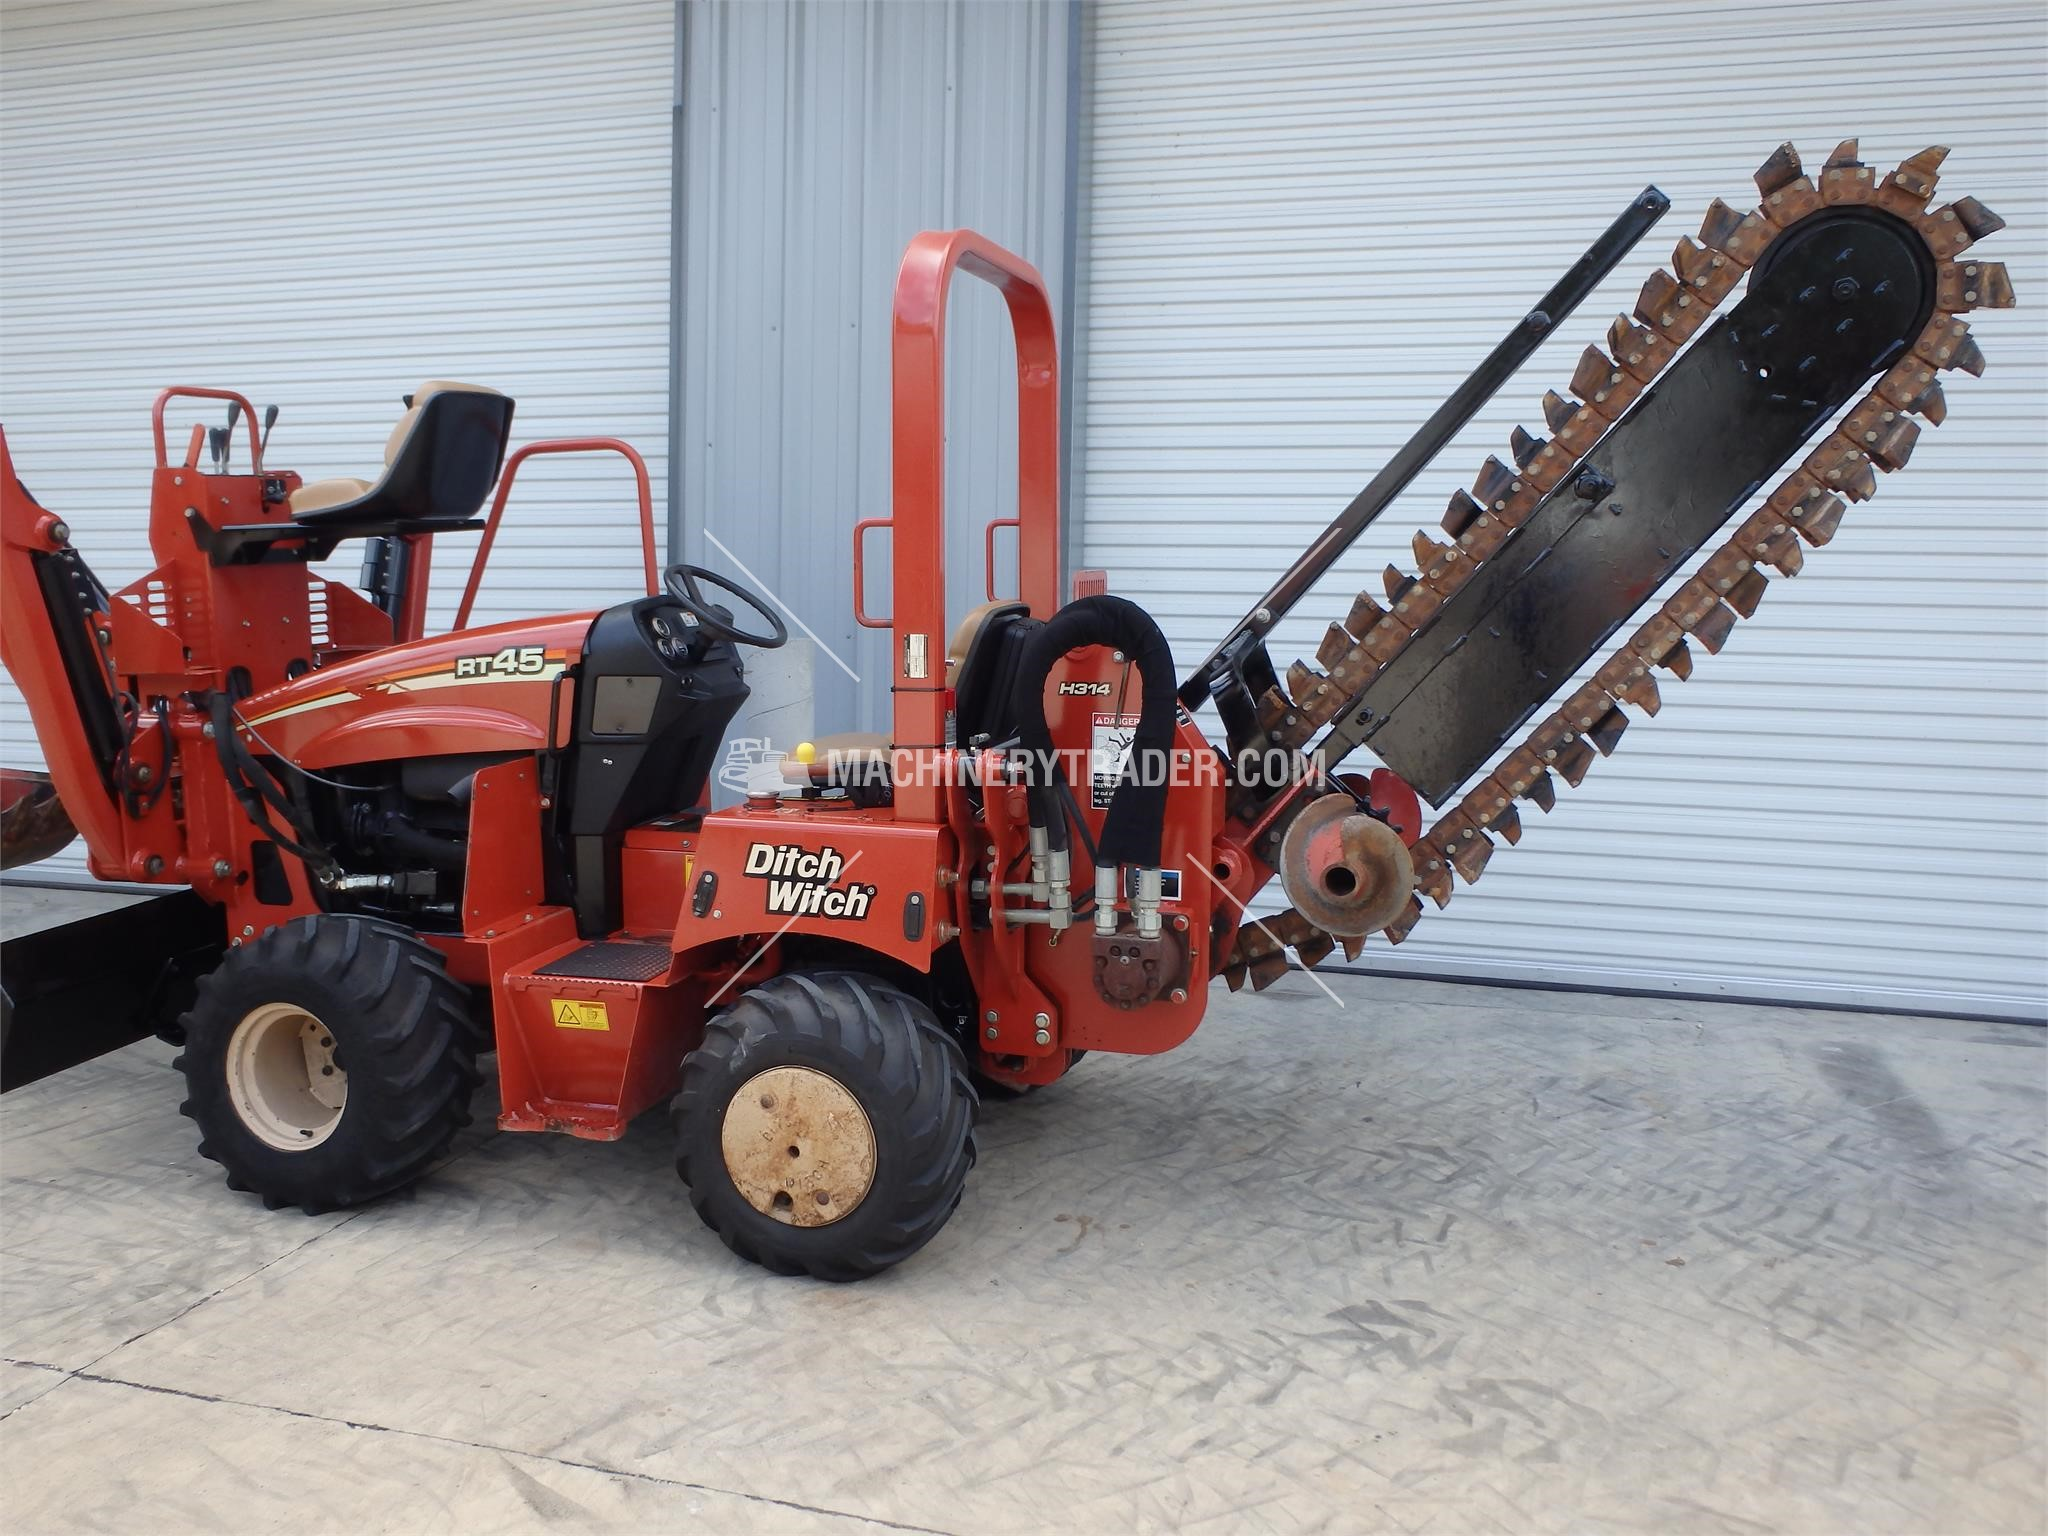 2010 ditch witch rt45 sale in louisiana 56126. Black Bedroom Furniture Sets. Home Design Ideas